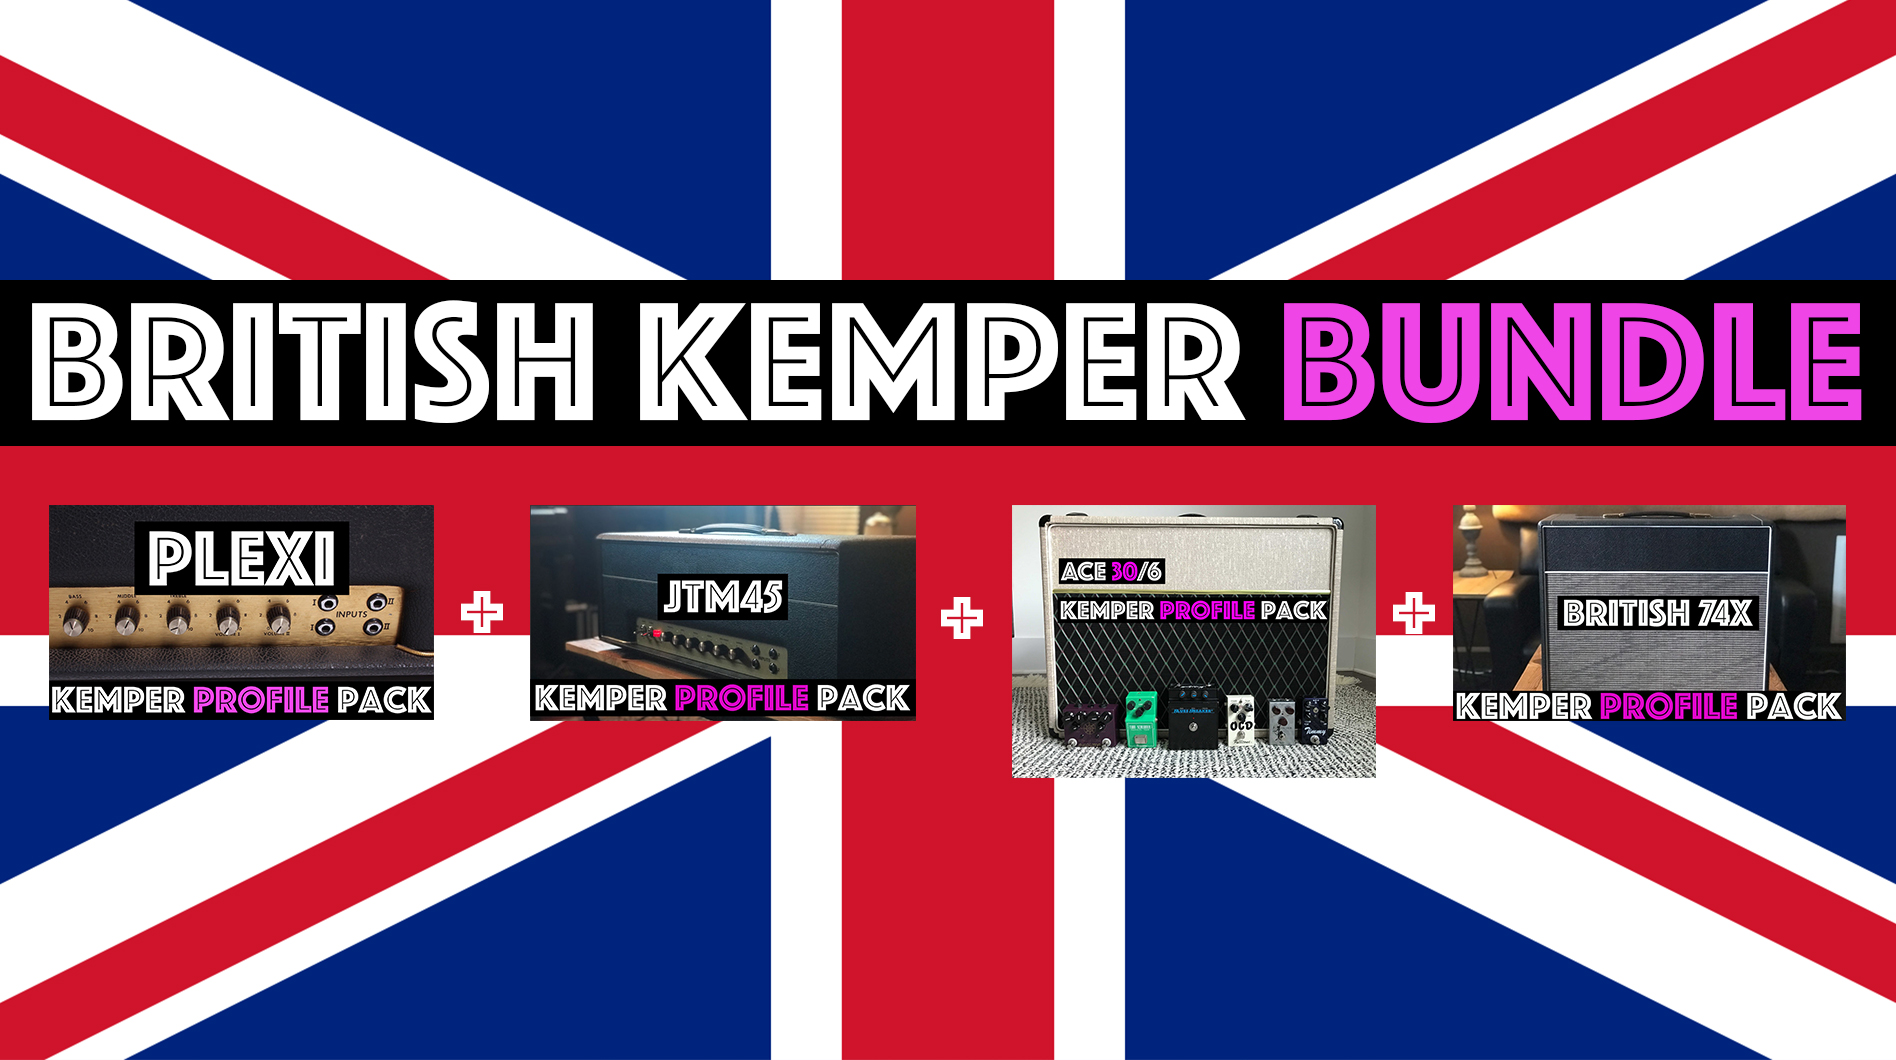 For the Queen! - The British Kemper Bundle combines the Plexi Kemper Profile Pack, the JTM45 Kemper Profile Pack, the Ace30/6 Kemper Pack and the British 1974X Kemper Profile Pack! British Chime to British chime, from the Beatles to the Rolling Stones. If its a British Tone its probably in the British Kemper Bundle.